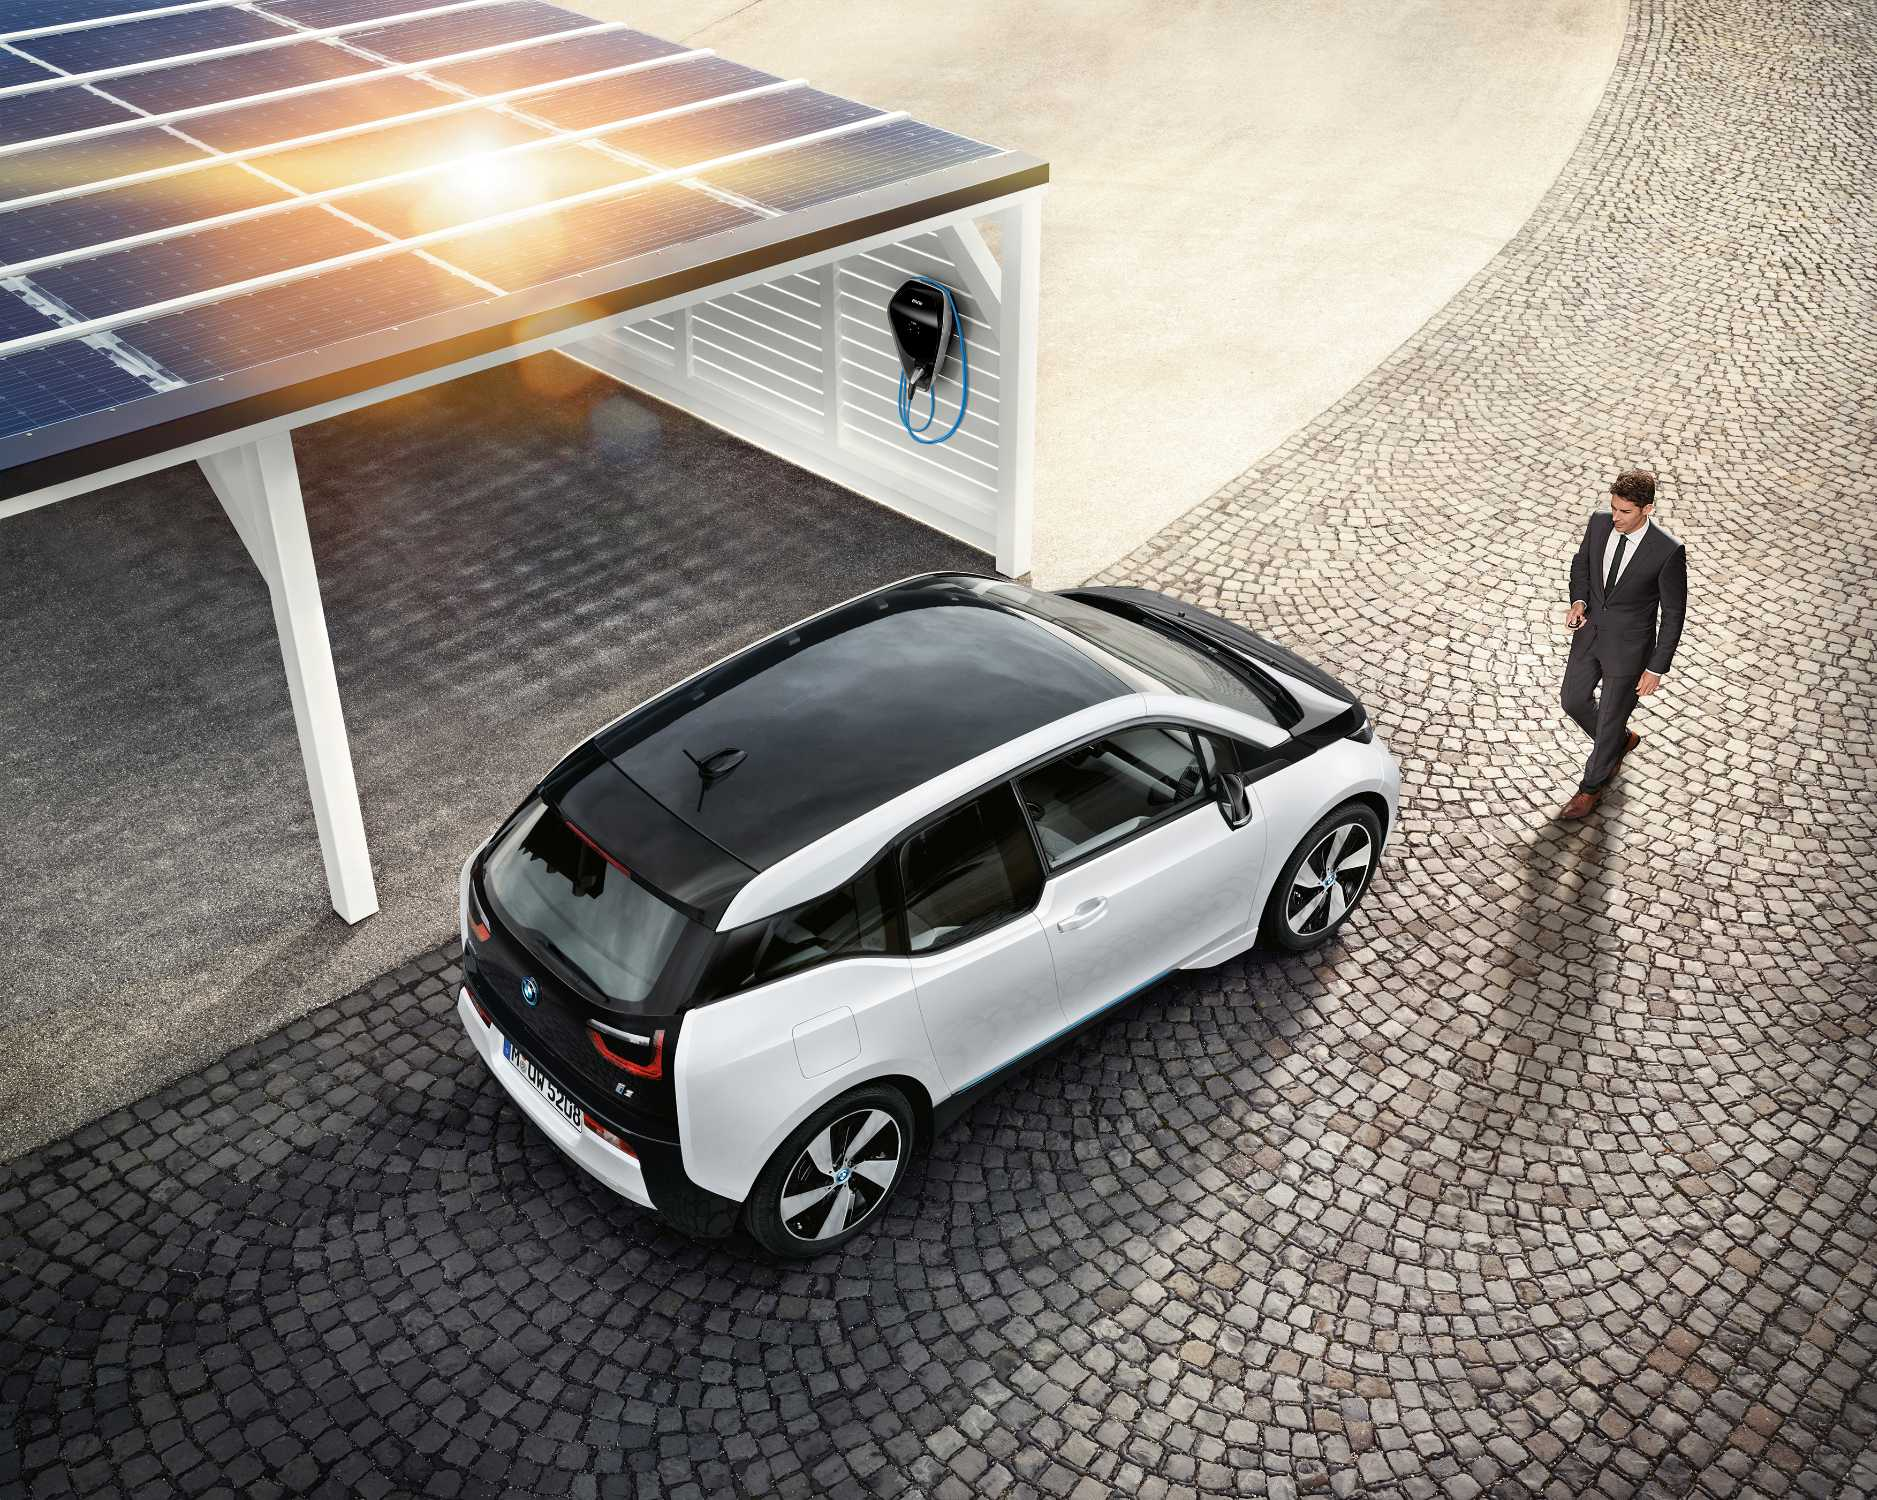 Bmw Digital Charging Service Optimises Charging And Integrates Electric Vehicles Into The Energy Market